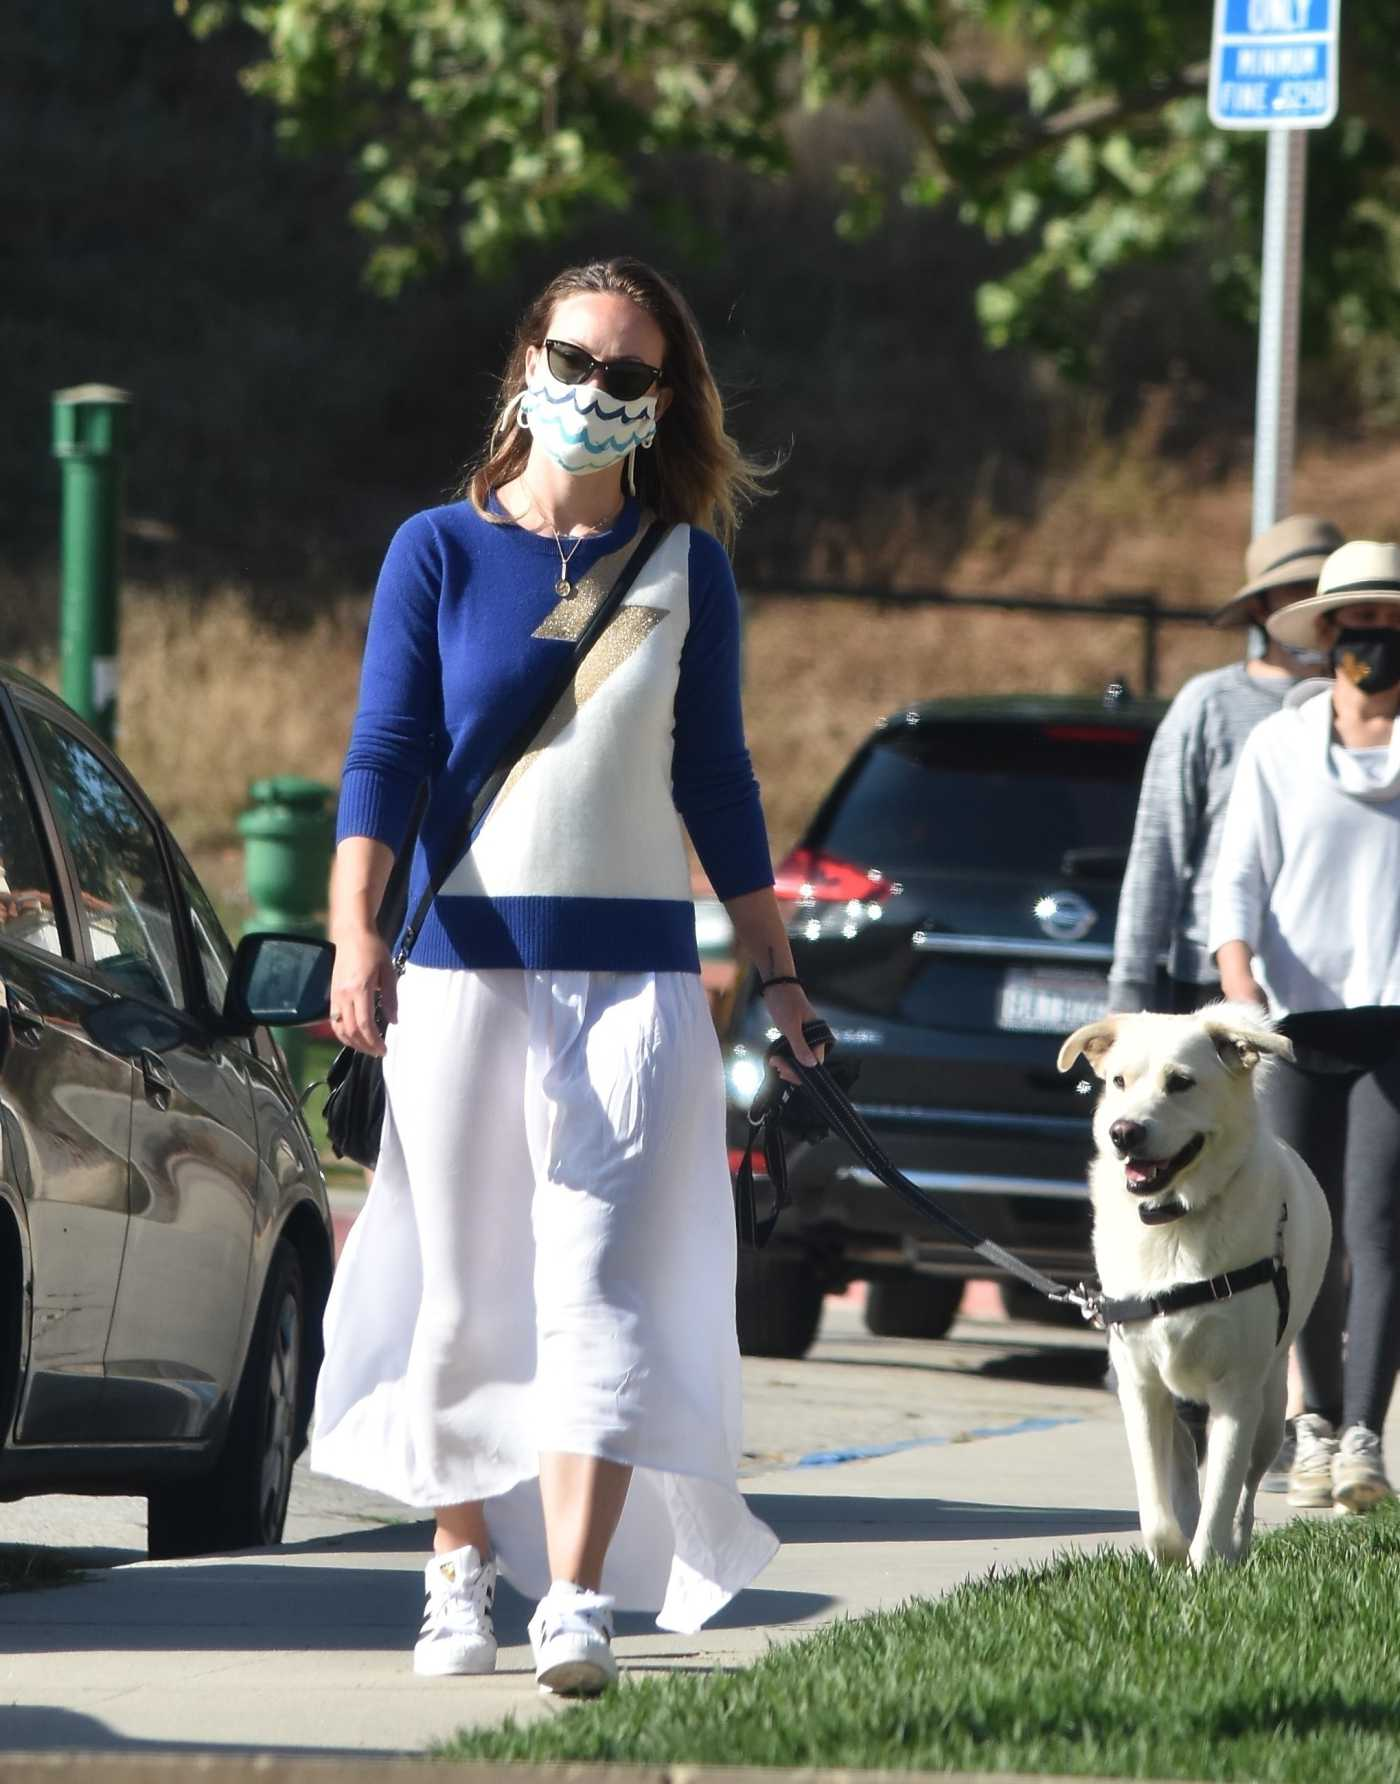 Olivia Wilde in a White Skirt Walks Her Dog in Los Angeles 06/07/2020